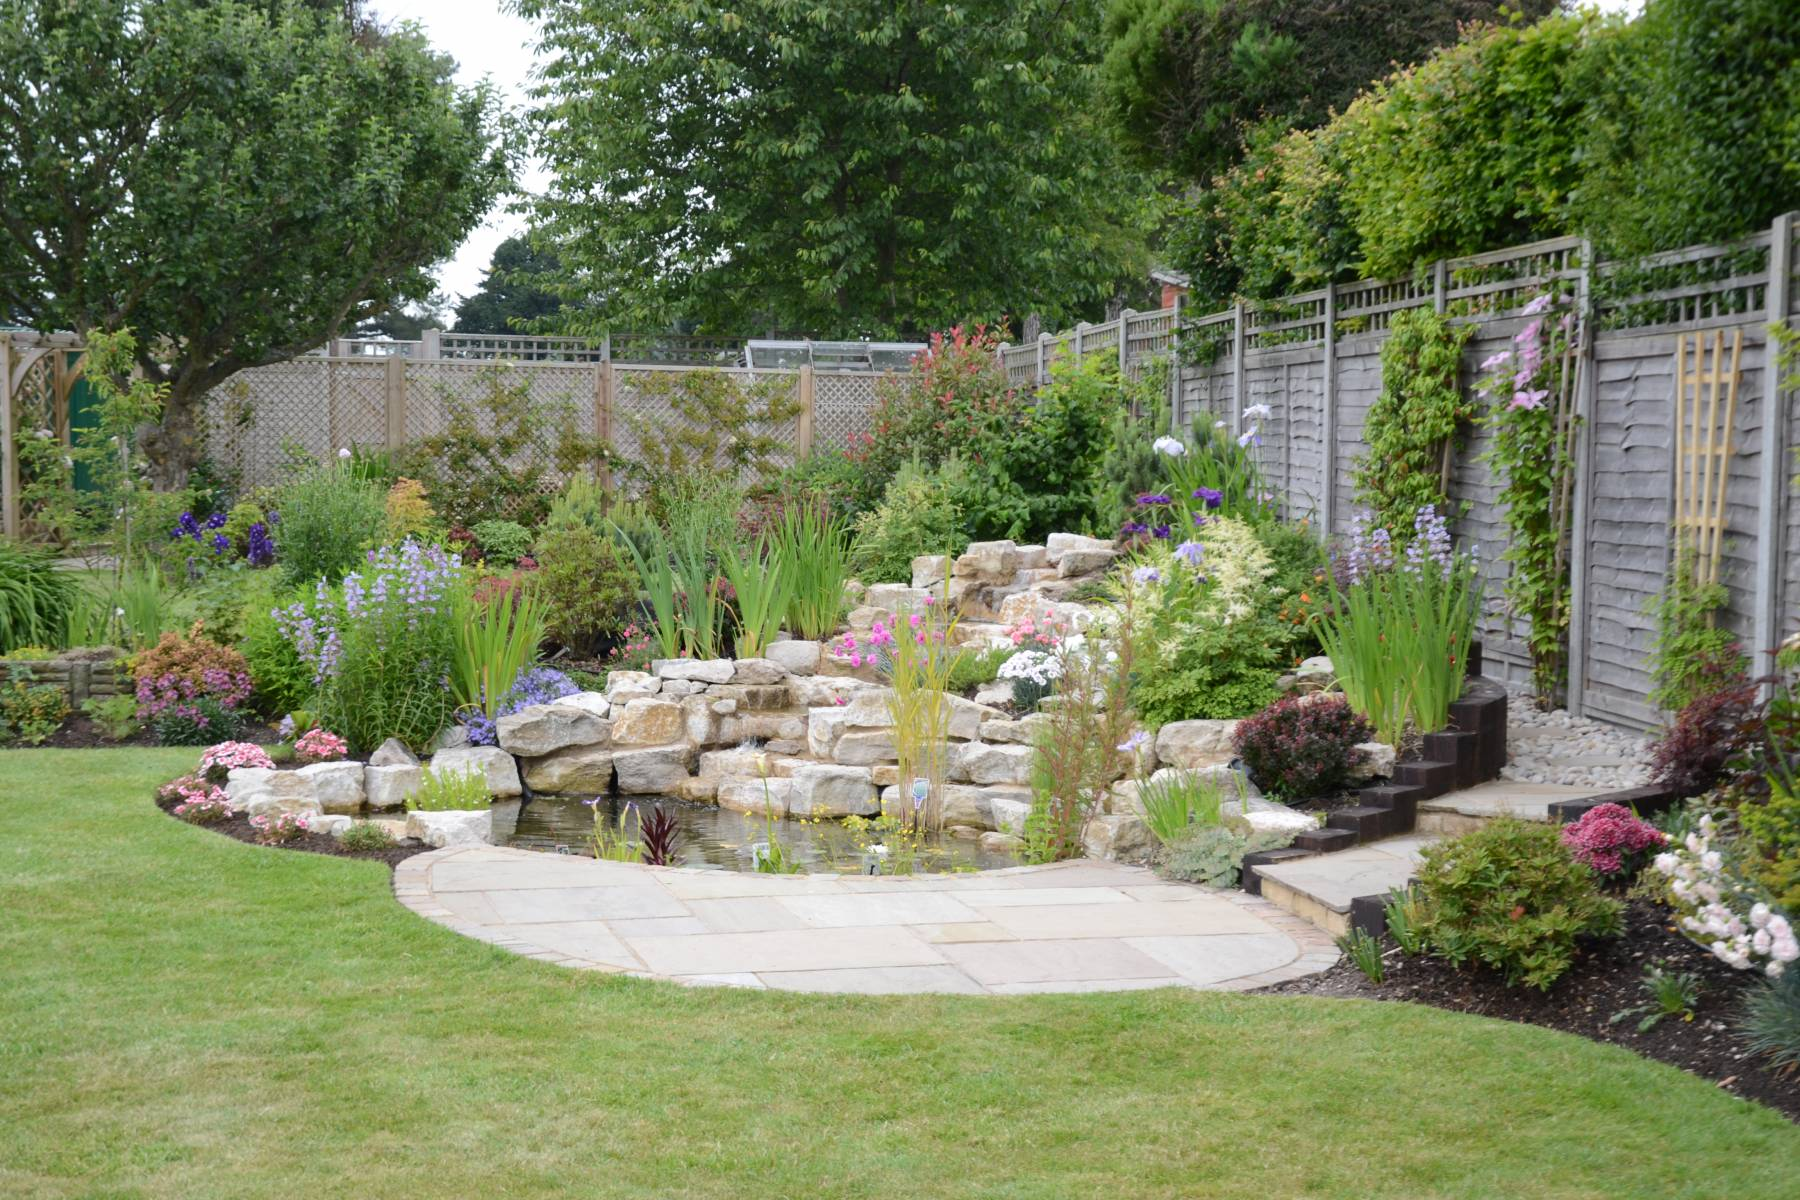 Pond, rockery and planting scheme